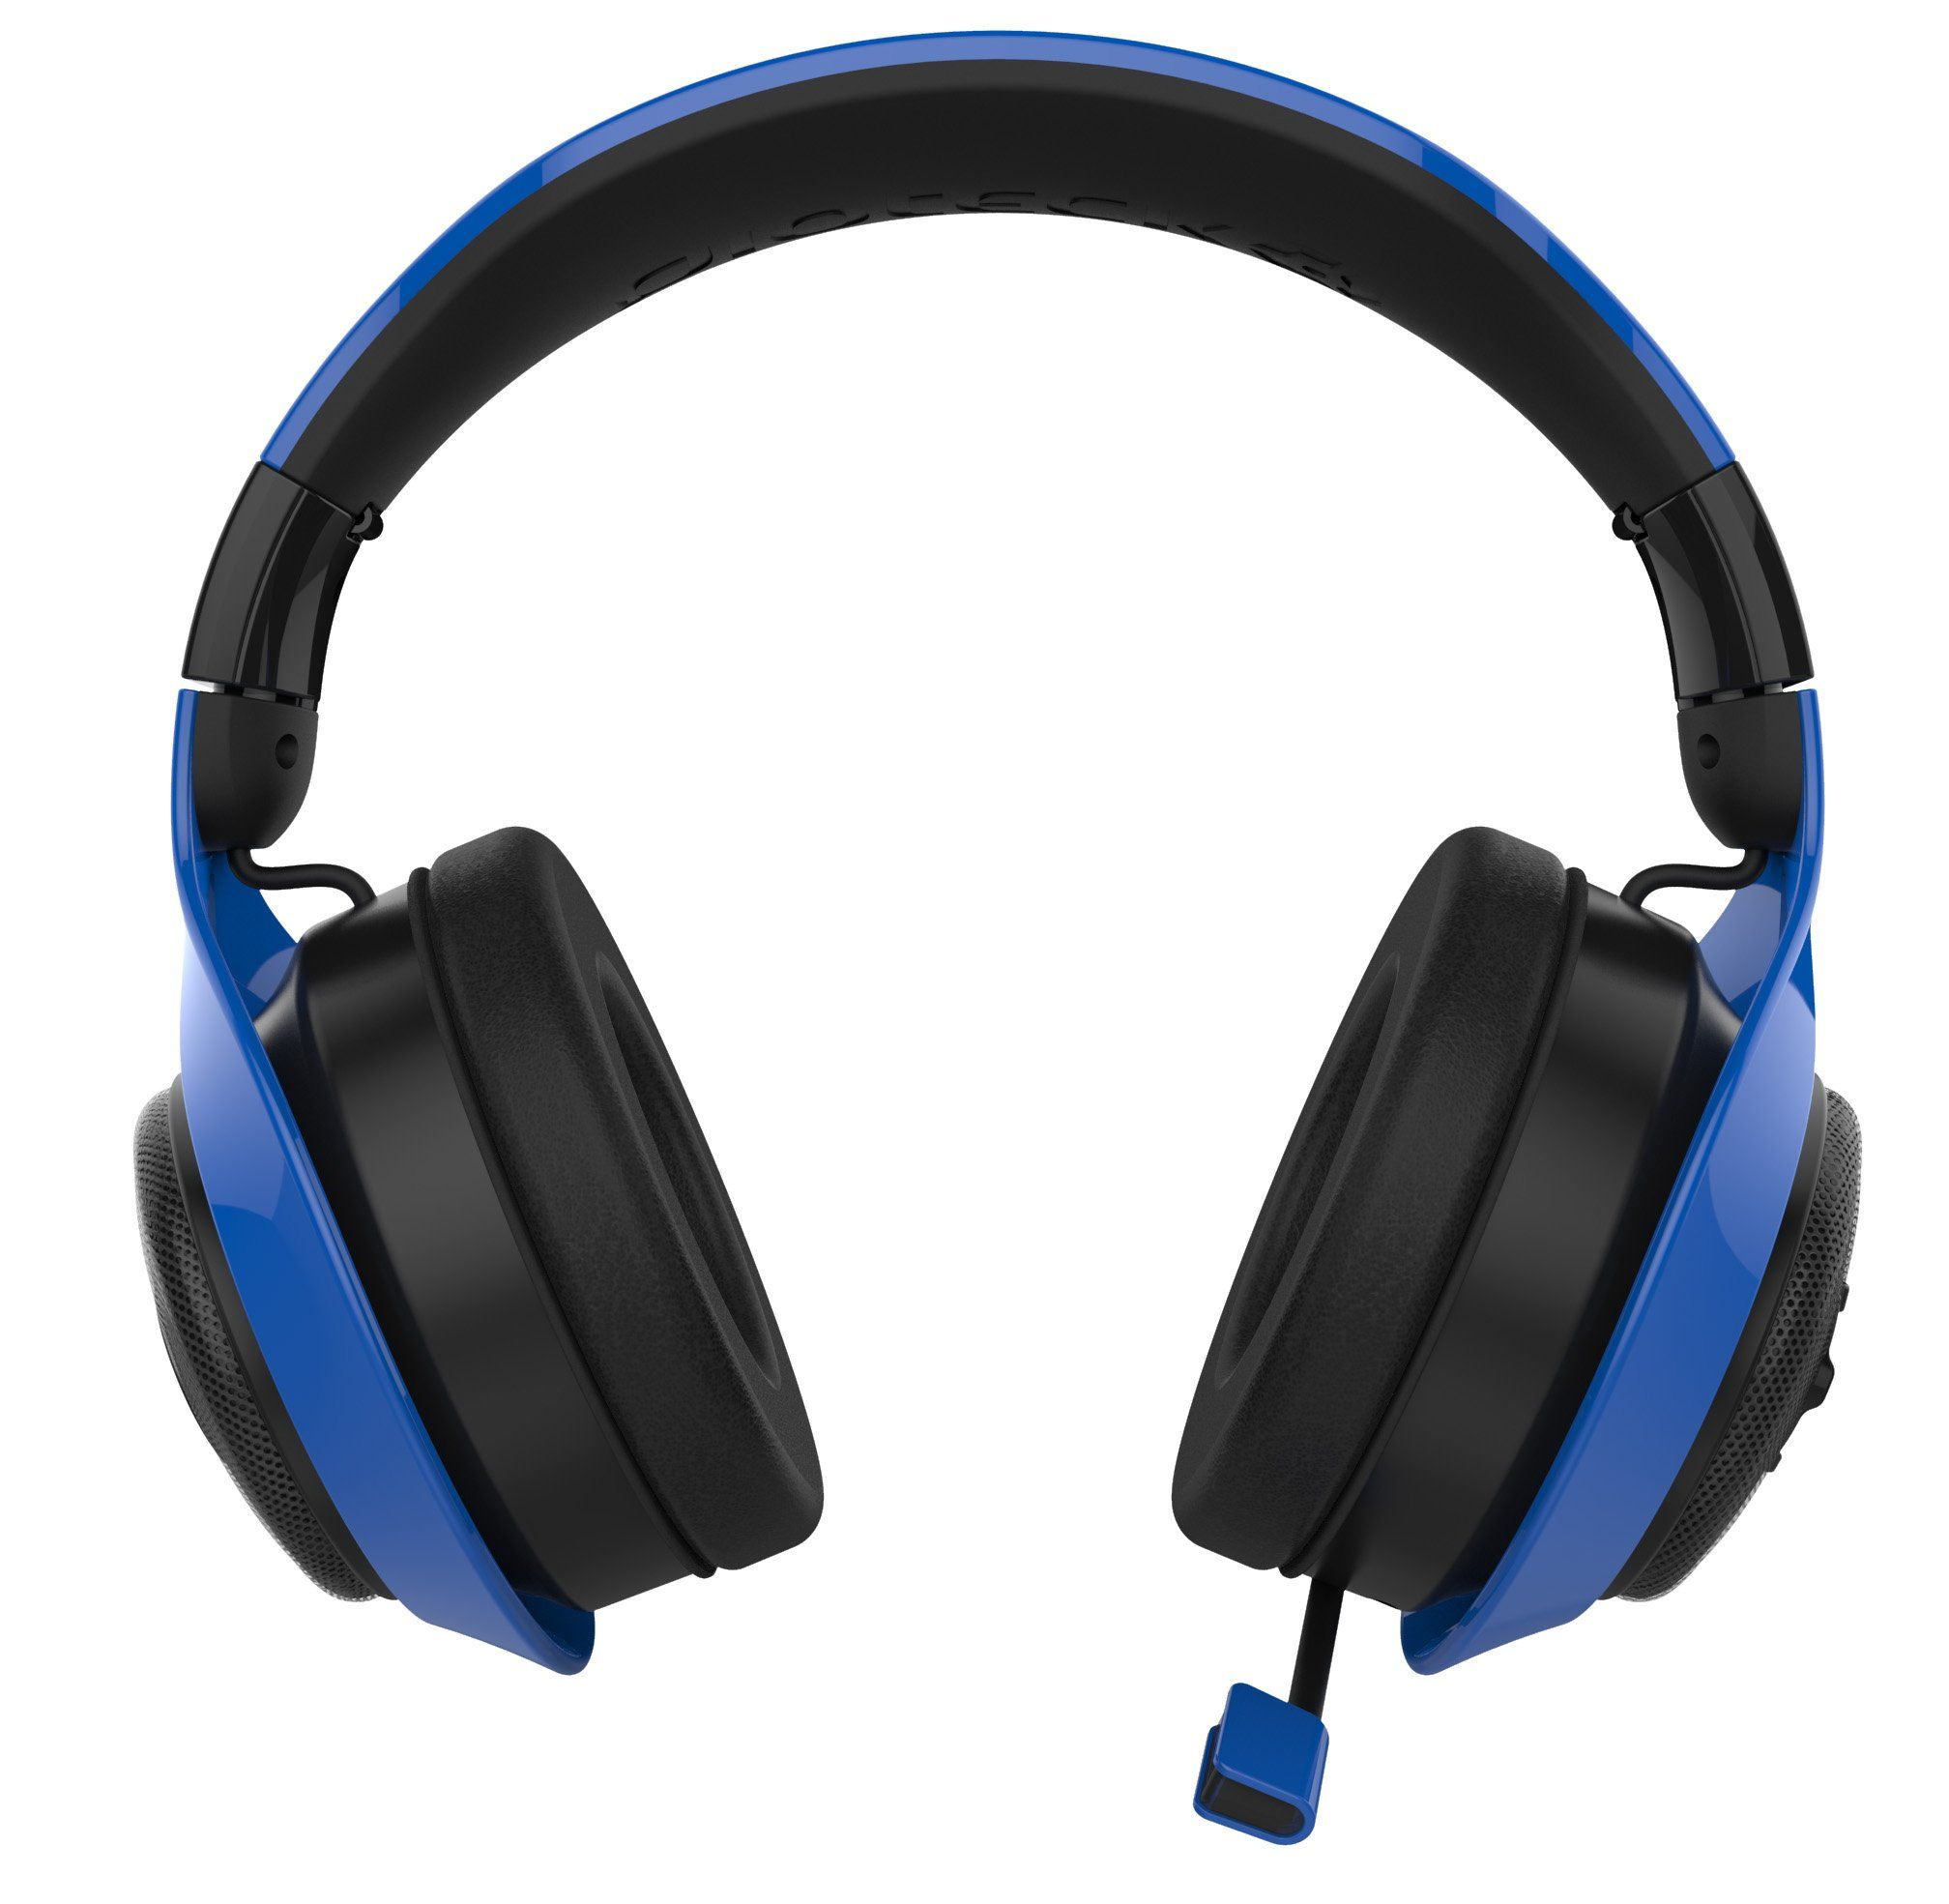 Gioteck FL 200 Wired Stereo Headset